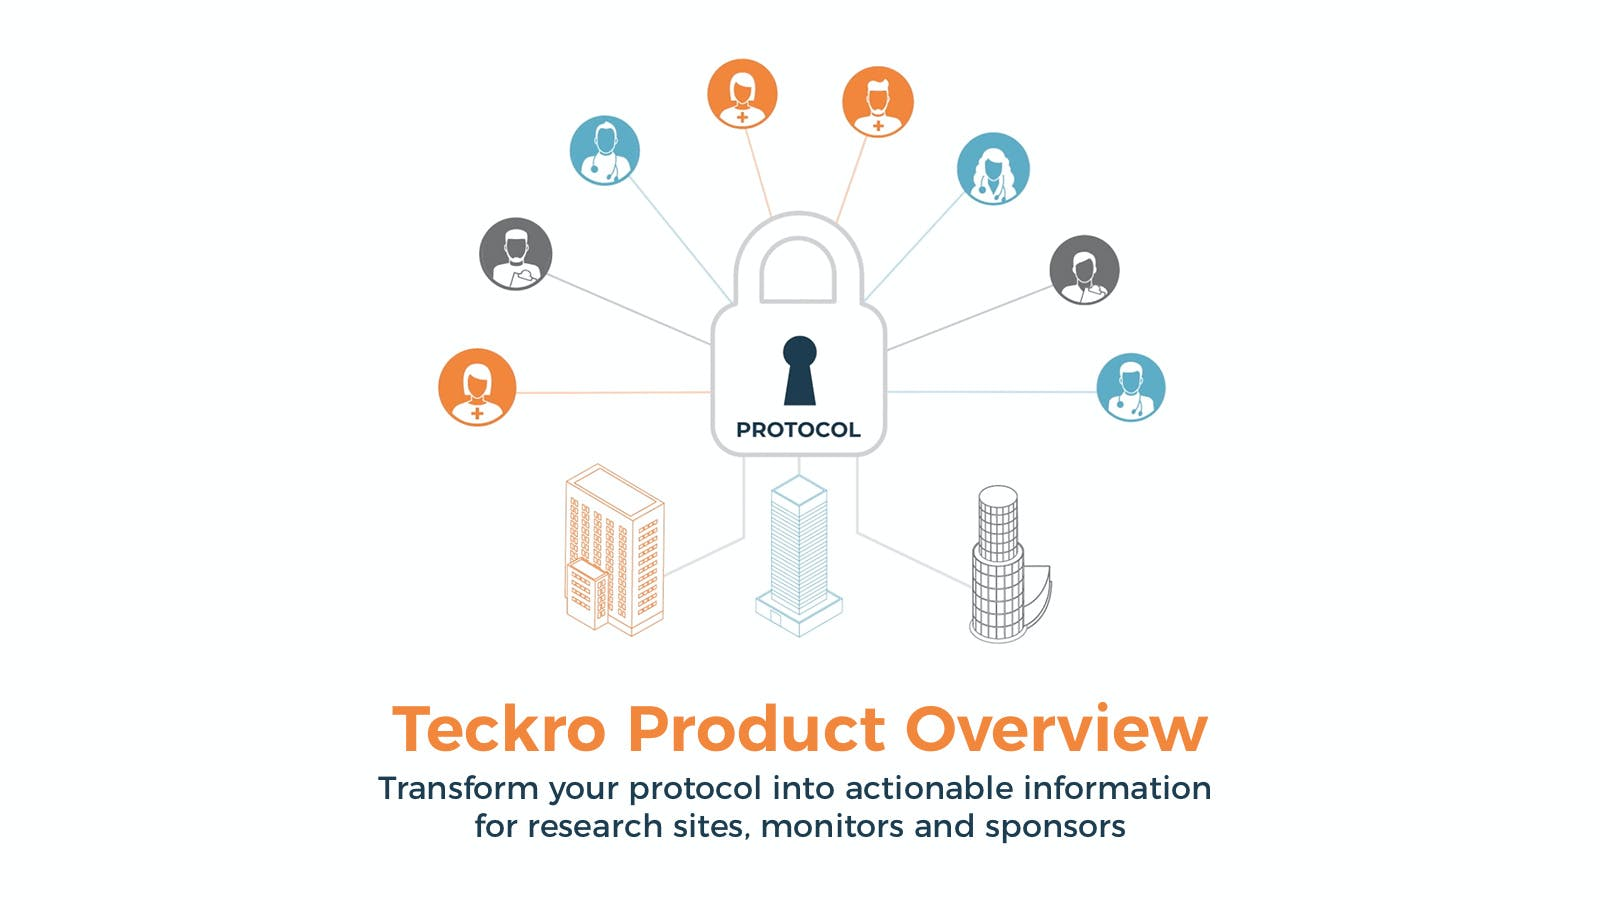 Video: Teckro Product Overview